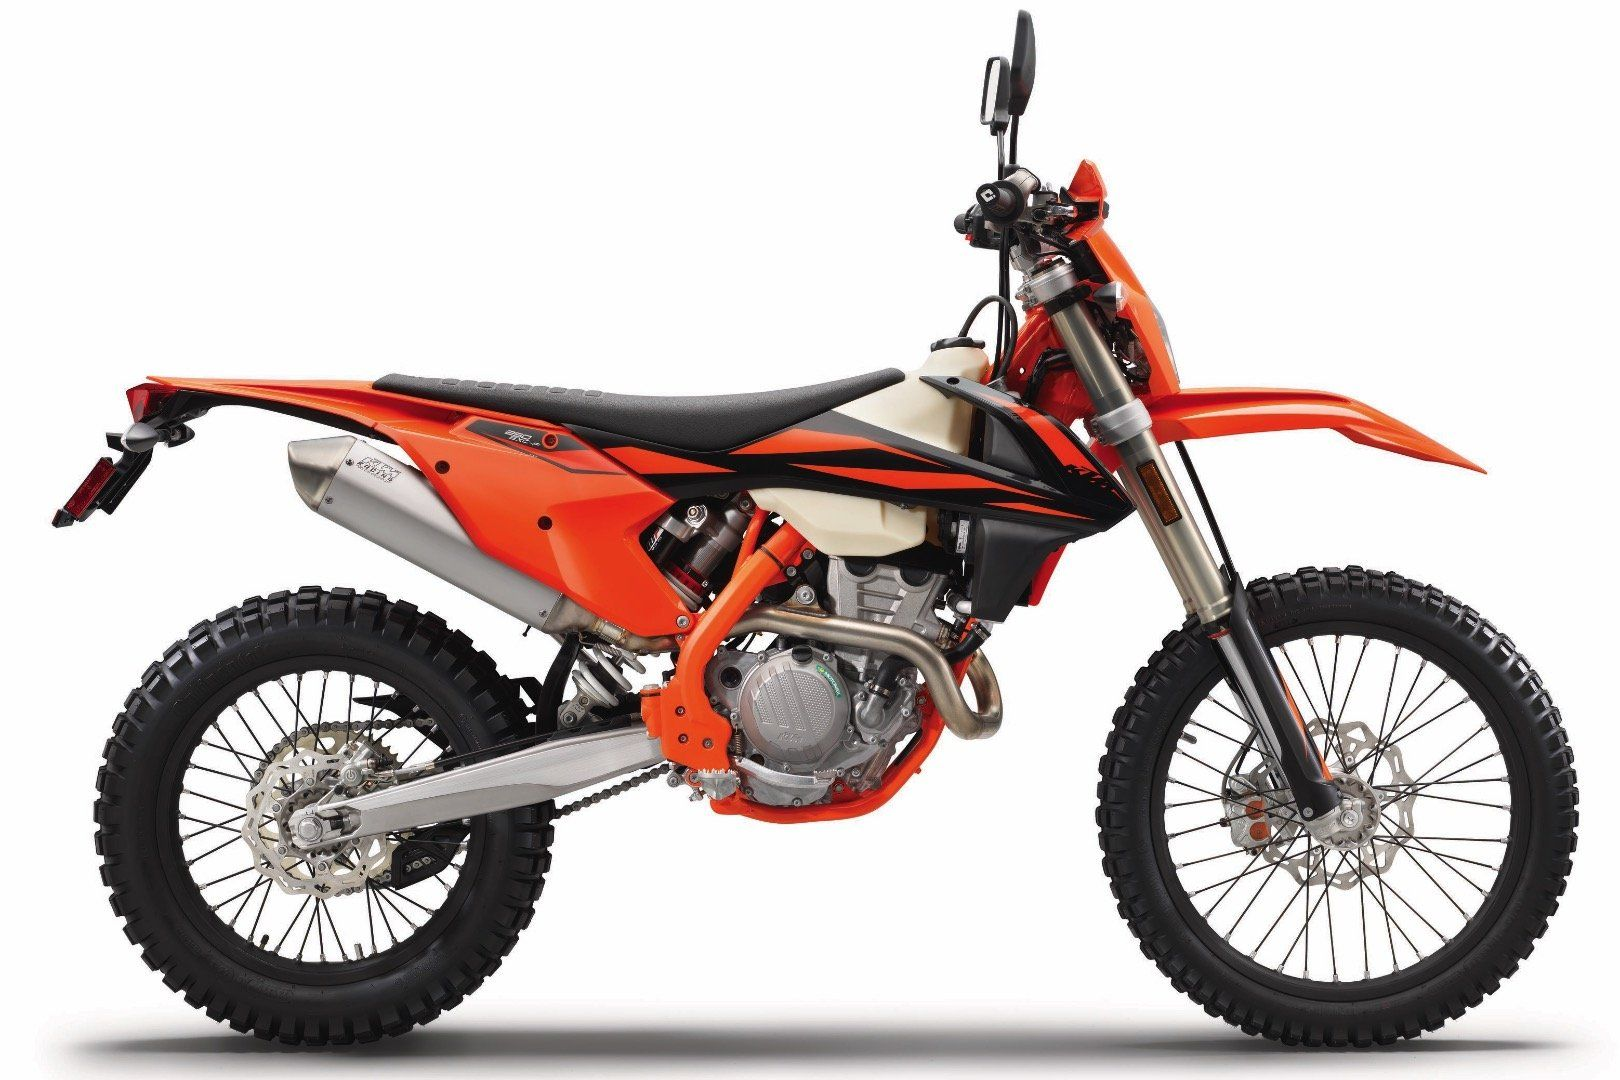 2019 Ktm 250 Exc F New Concept from 2019 Ktm ExcF Dual